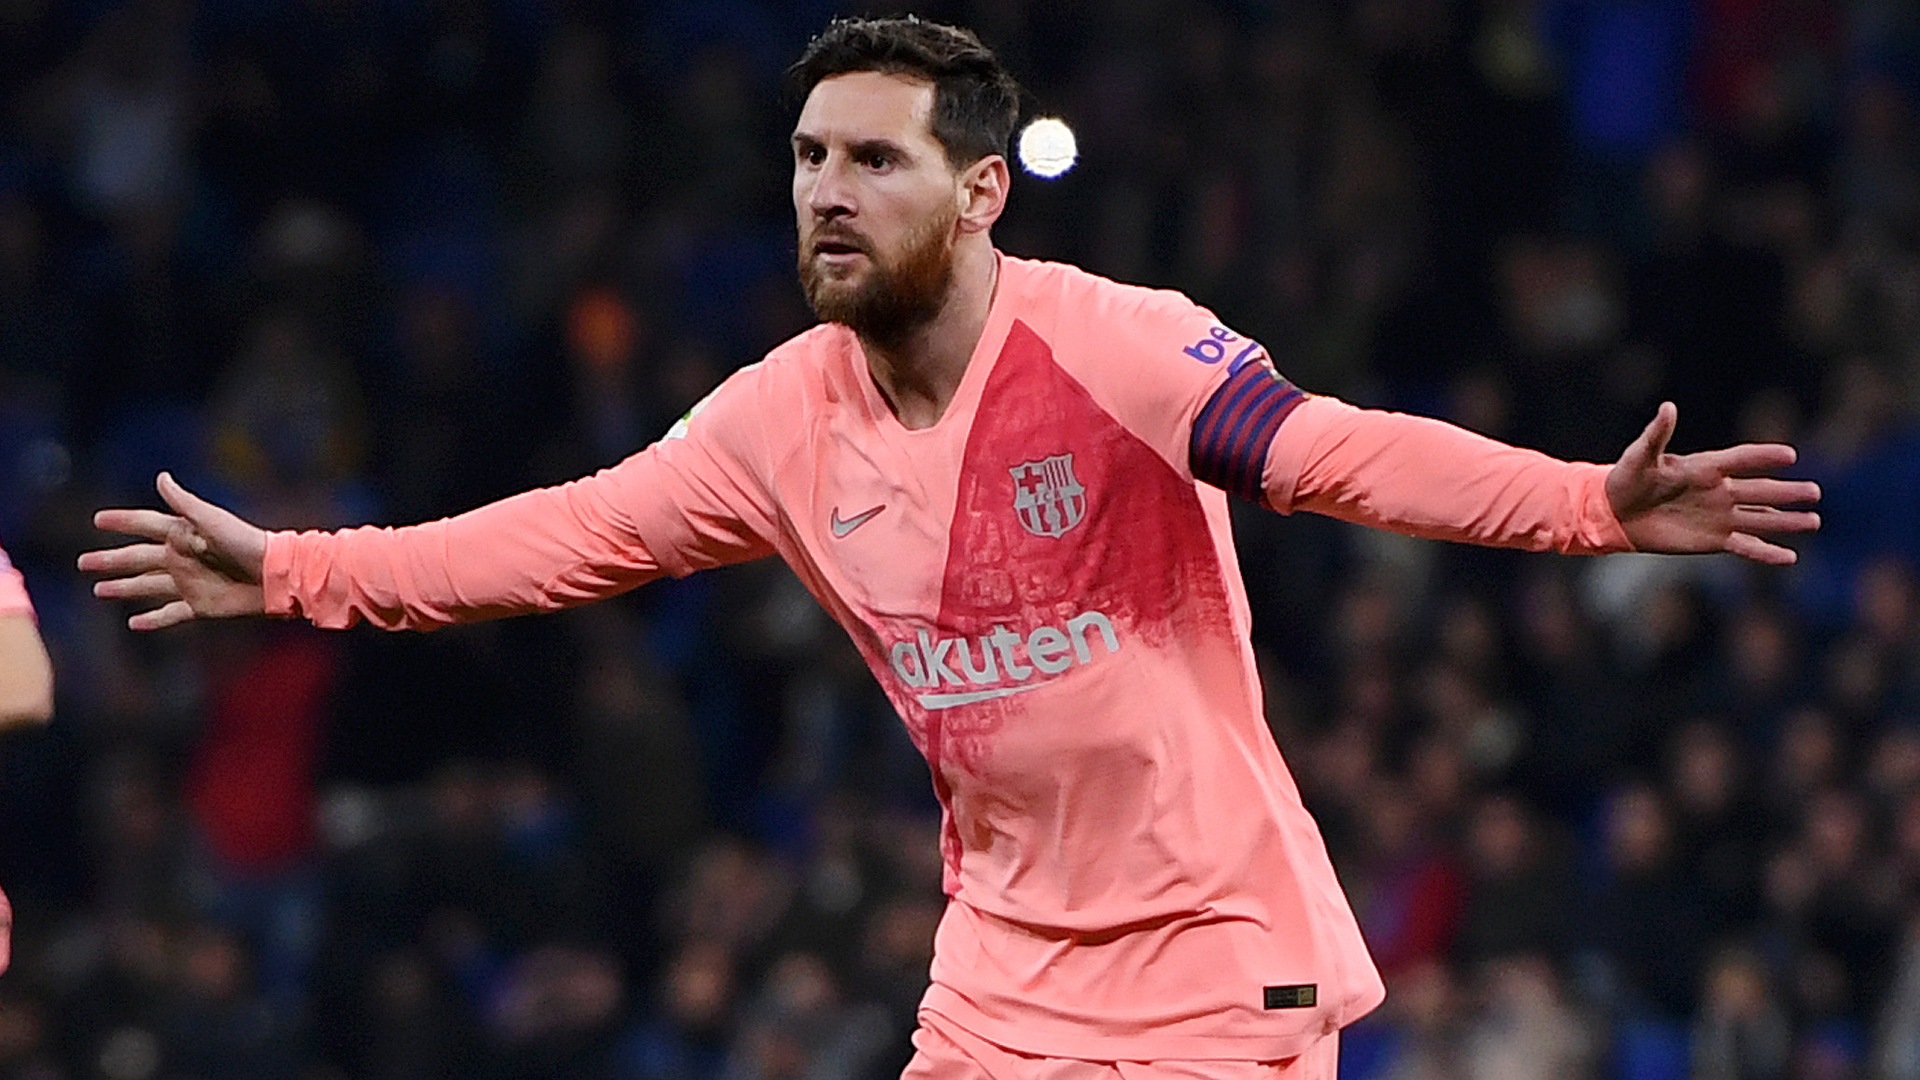 Ballon d'Or is a lie – Alba says Messi is world's best